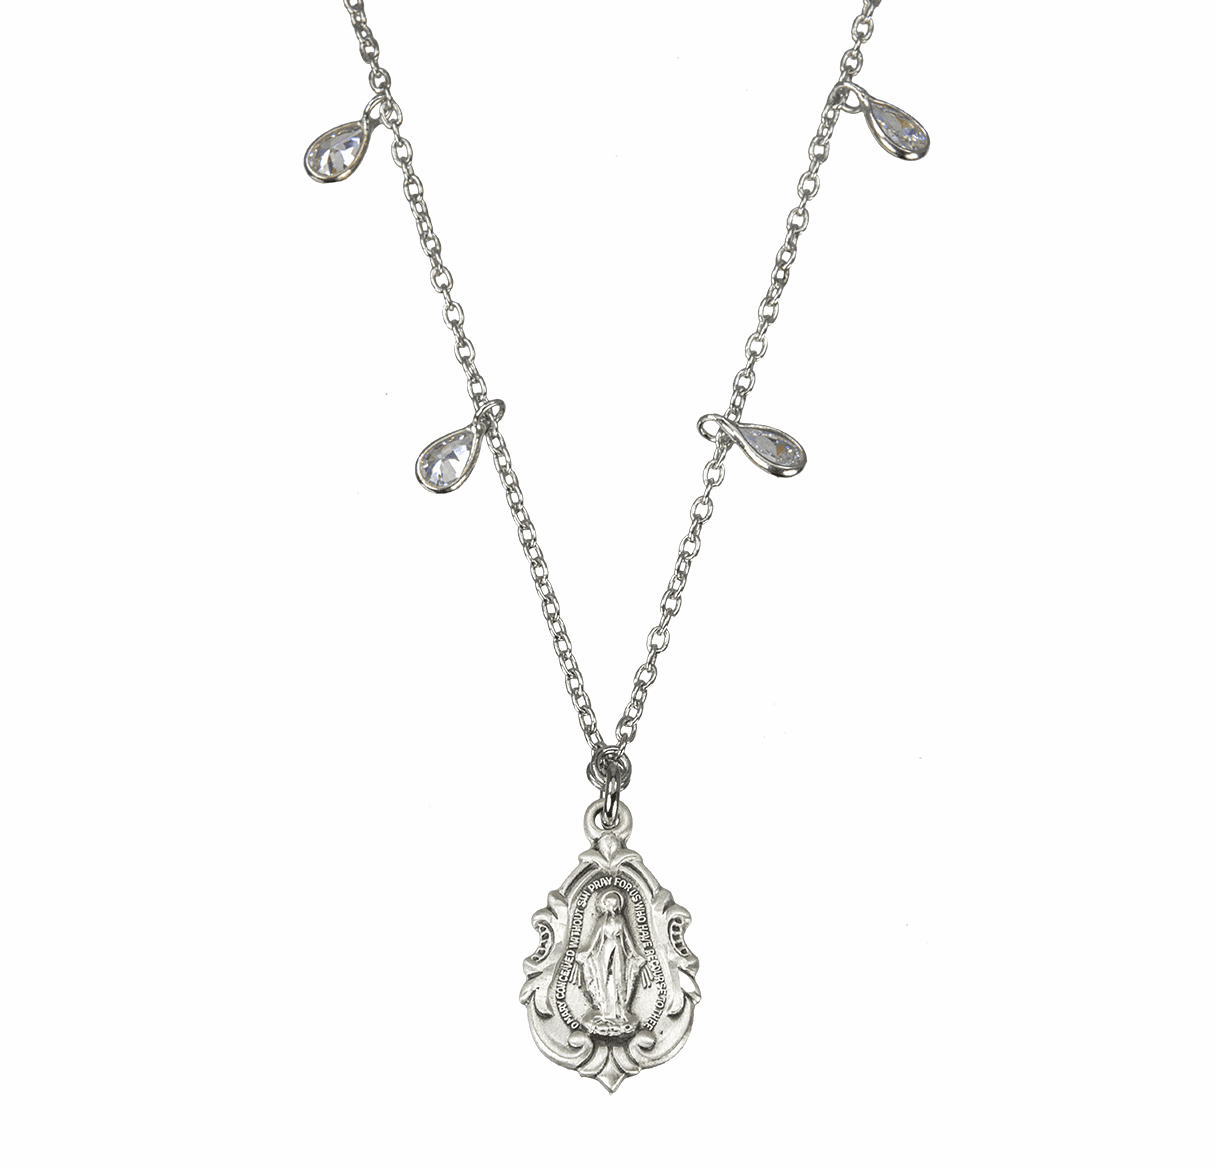 HMH Religious Miraculous Medal Teardrop Cubic Zirconia Sterling Silver Beaded Necklace